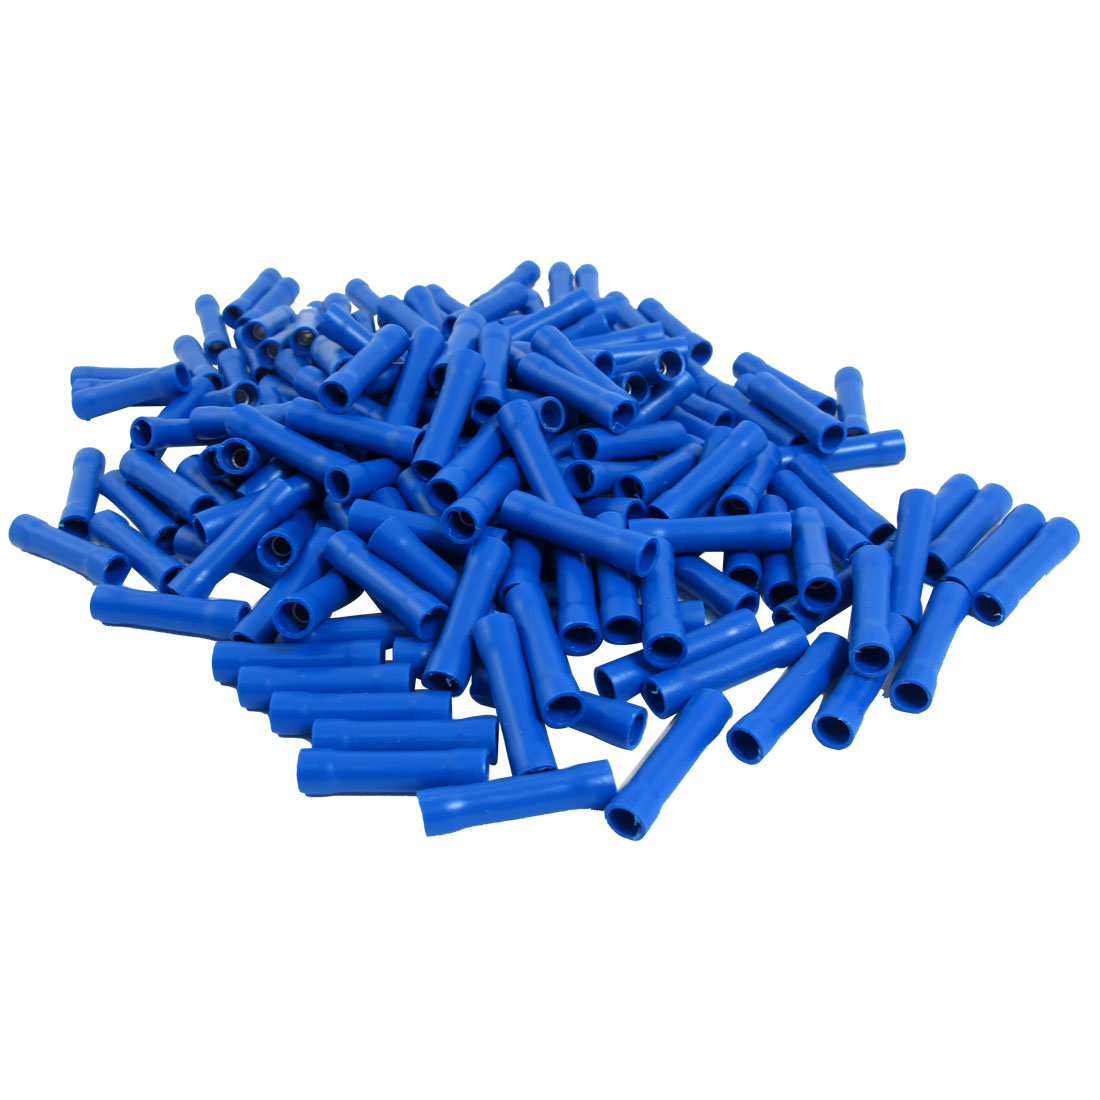 184pcs Electrical Wire Crimp Insulated Straight Butt Connector Terminals